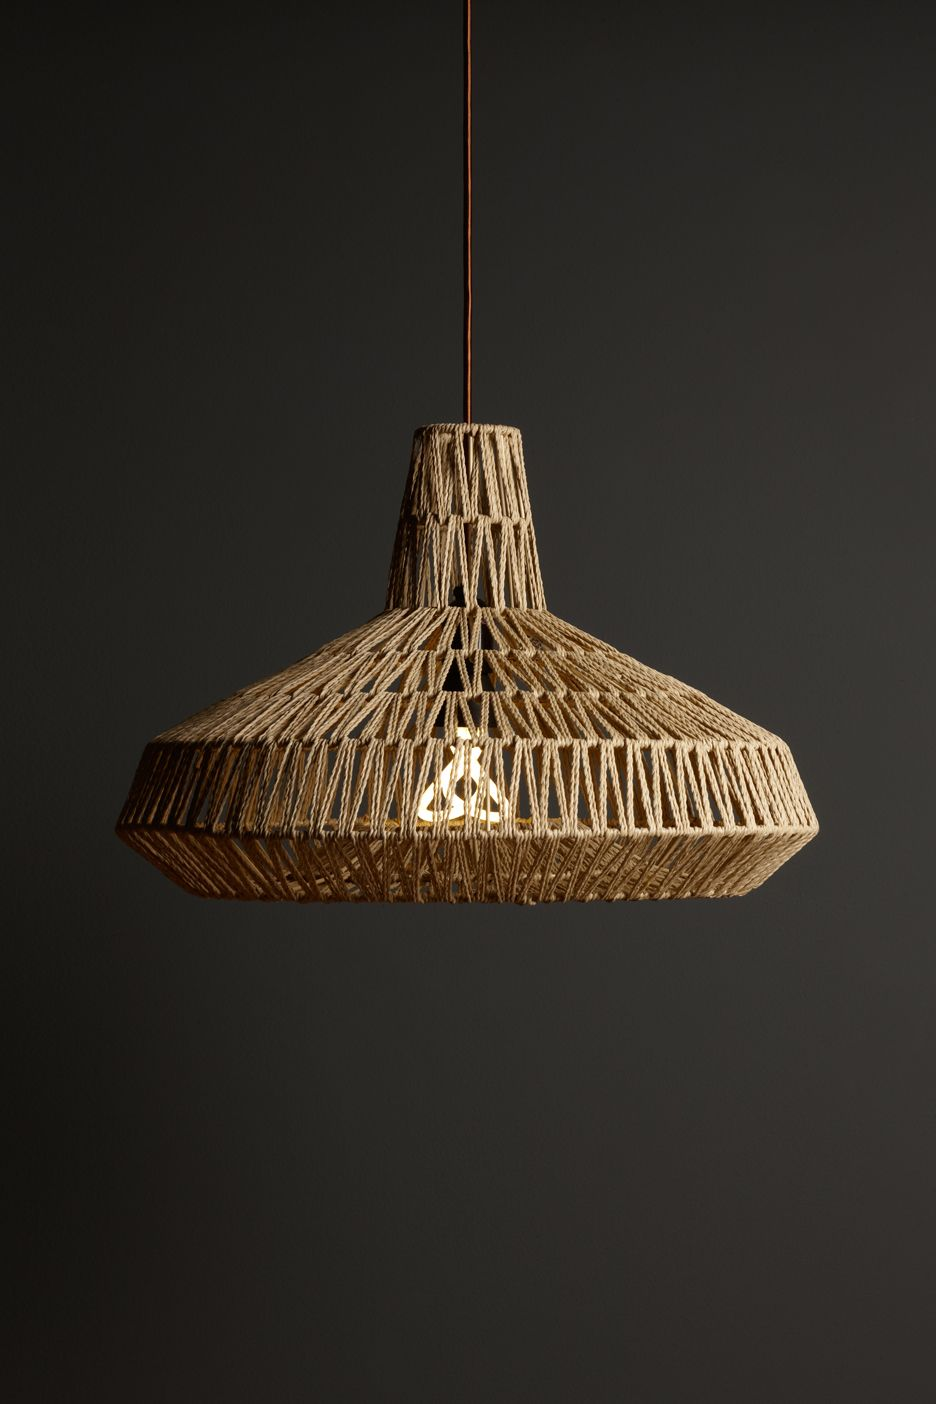 Baby plumen 001 in a habitat wilbur rattan pendant lampshade baby plumen 001 in a habitat wilbur rattan pendant lampshade available at http mozeypictures Gallery